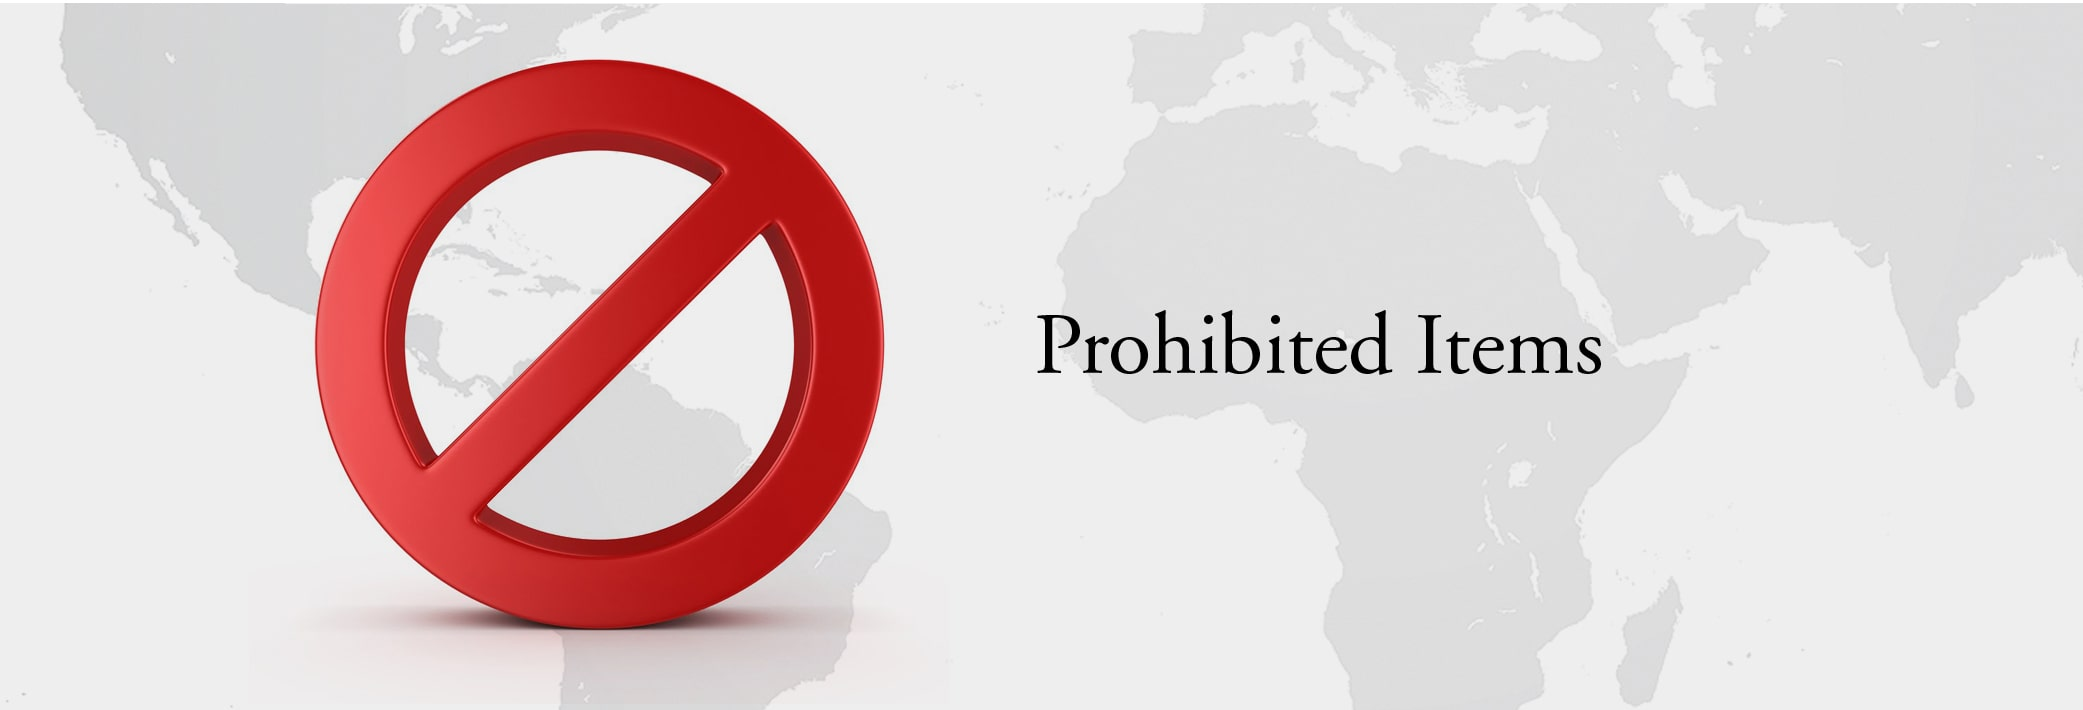 List of 24 Prohibited Items to Bring (Import) in Saudi Arabia